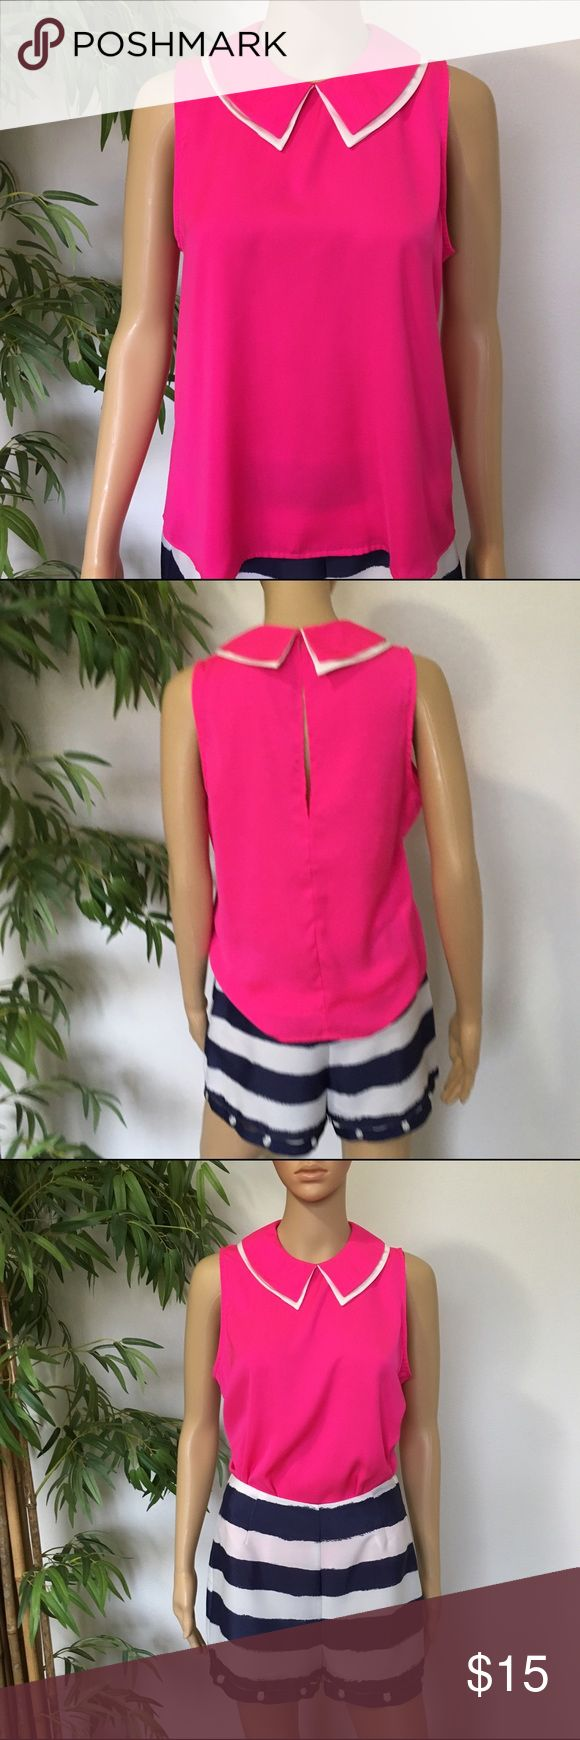 Hot Pink With Collar Blouse size Small NWOT hot pink Blouse with collar size small Forever 21 Tops Blouses